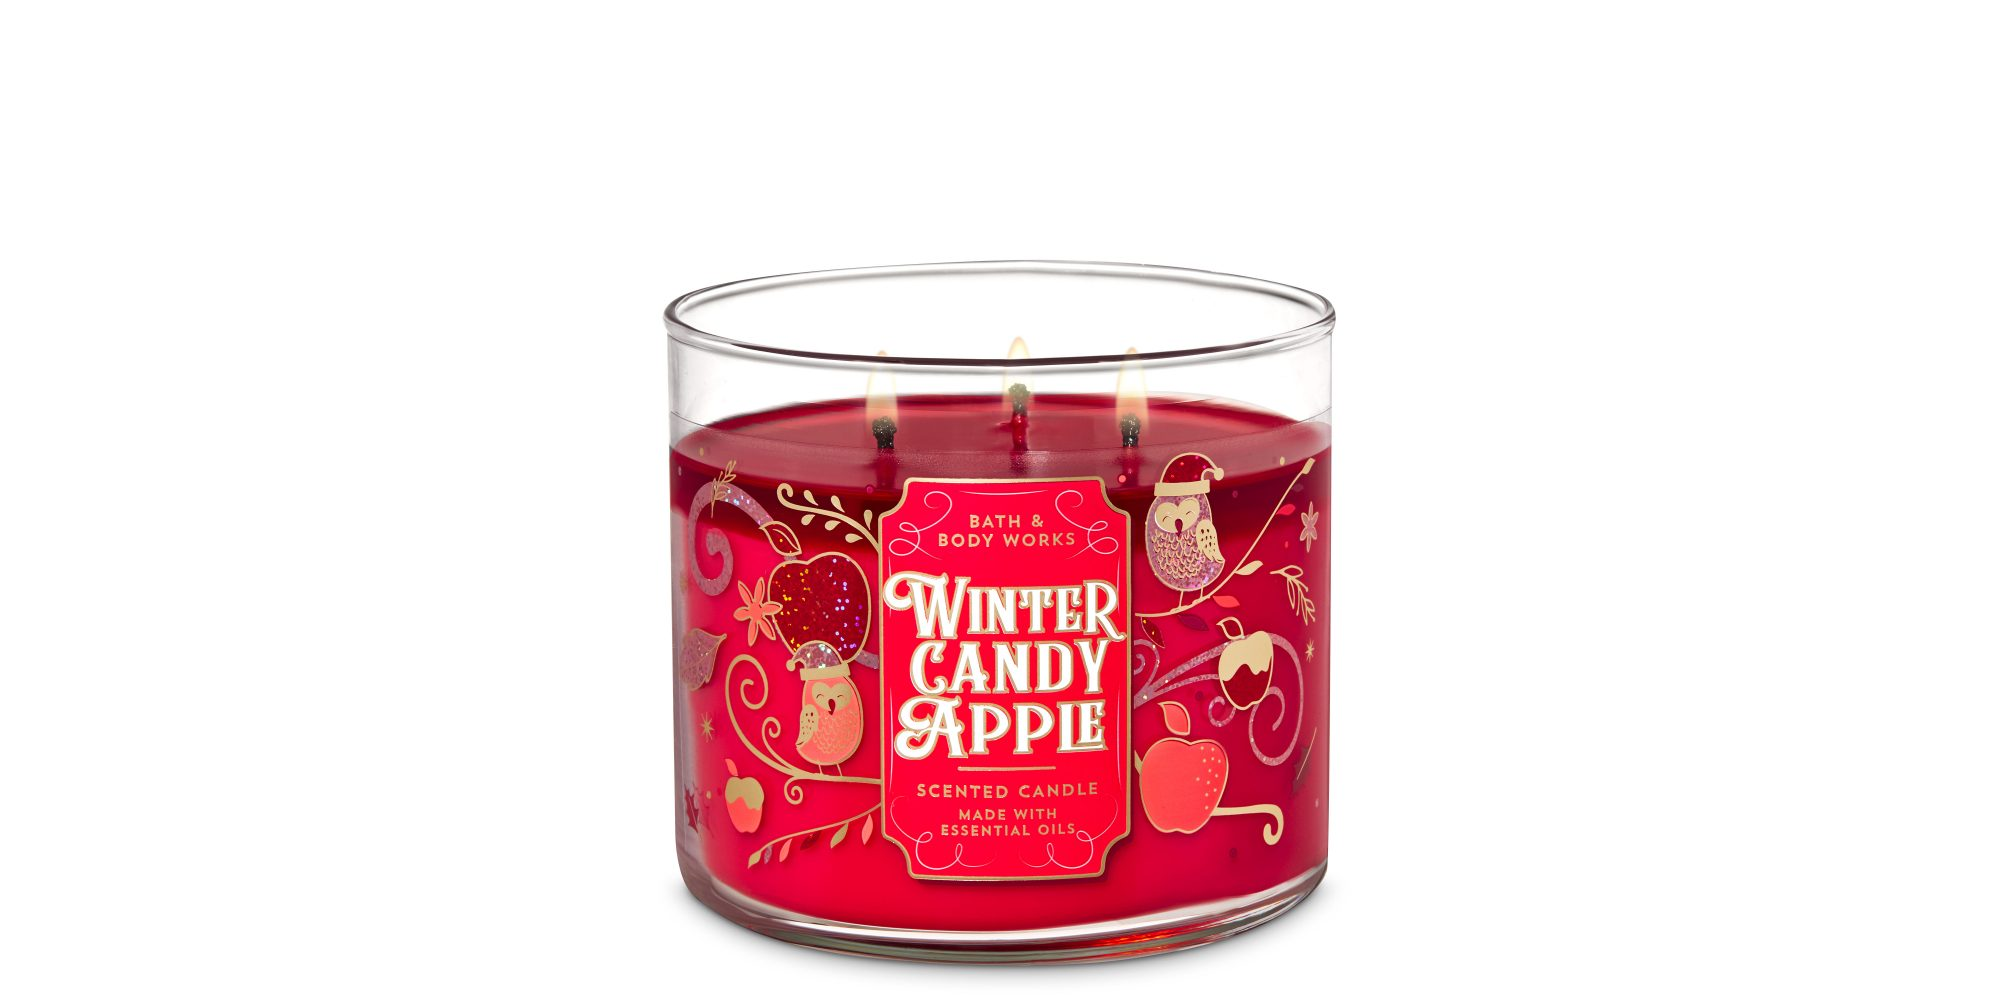 Bath & Body Works Winter Candy Apple 3-Wick Candle